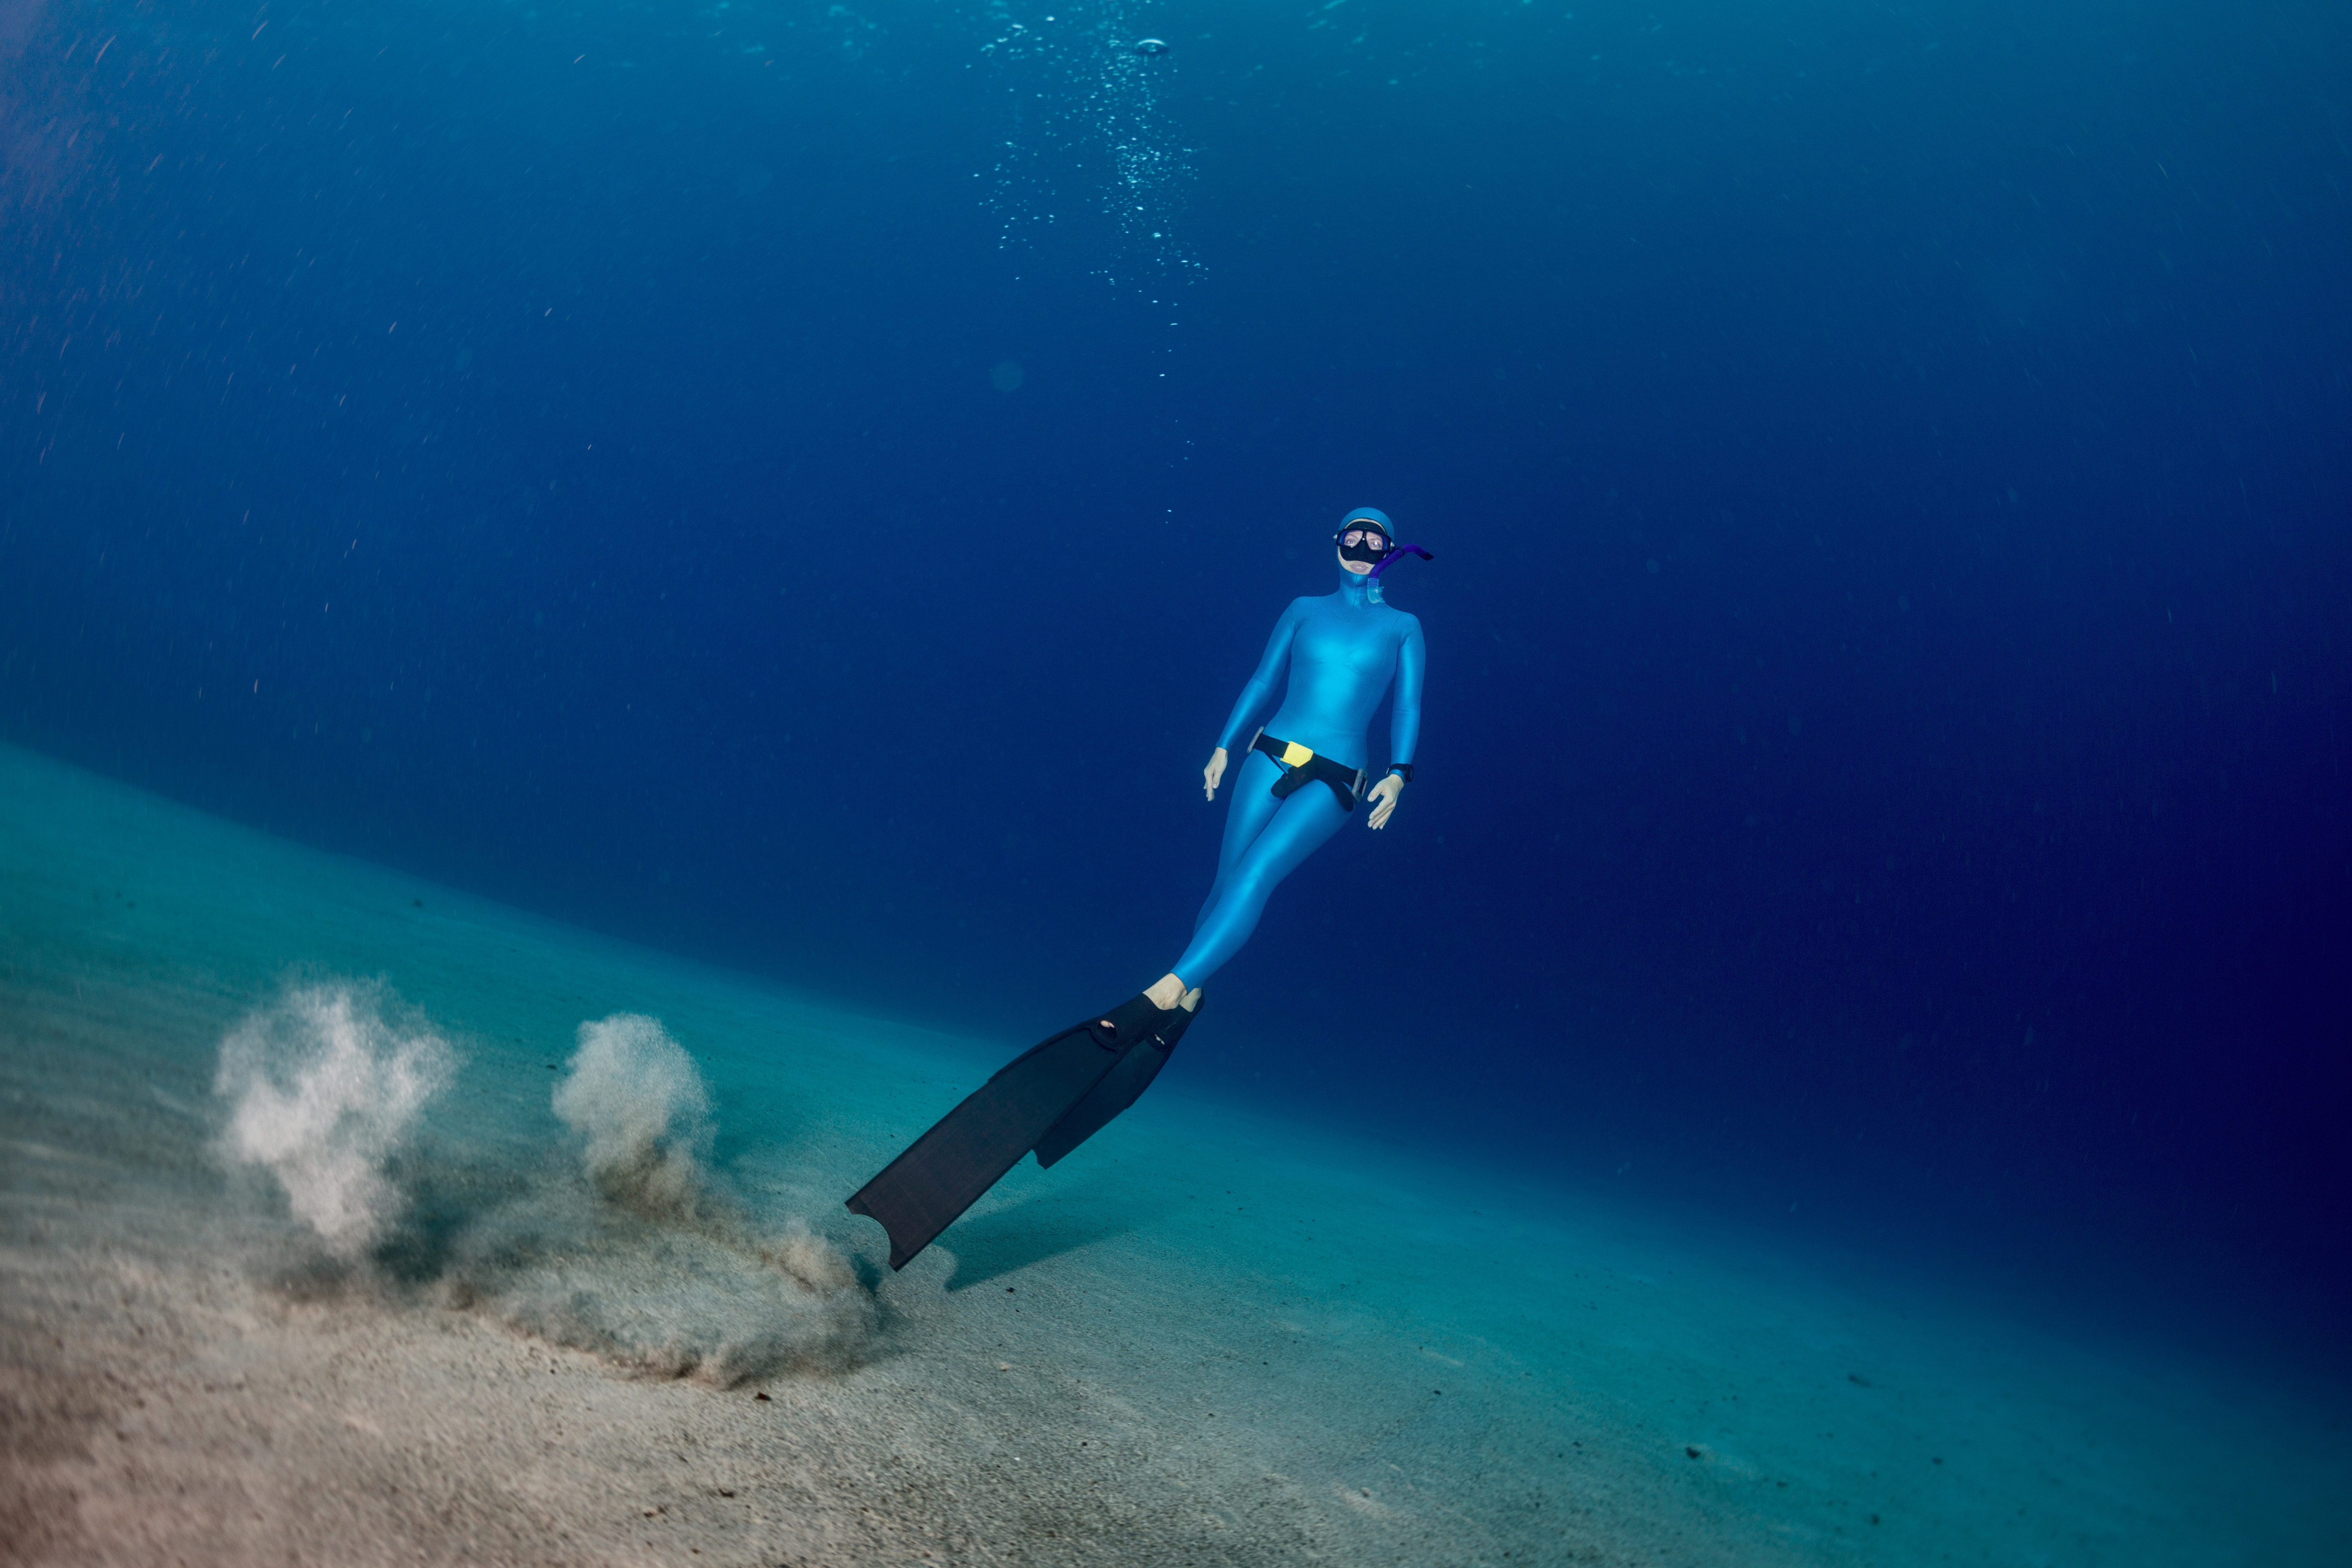 Freediving diver ascending from the sandy bottom